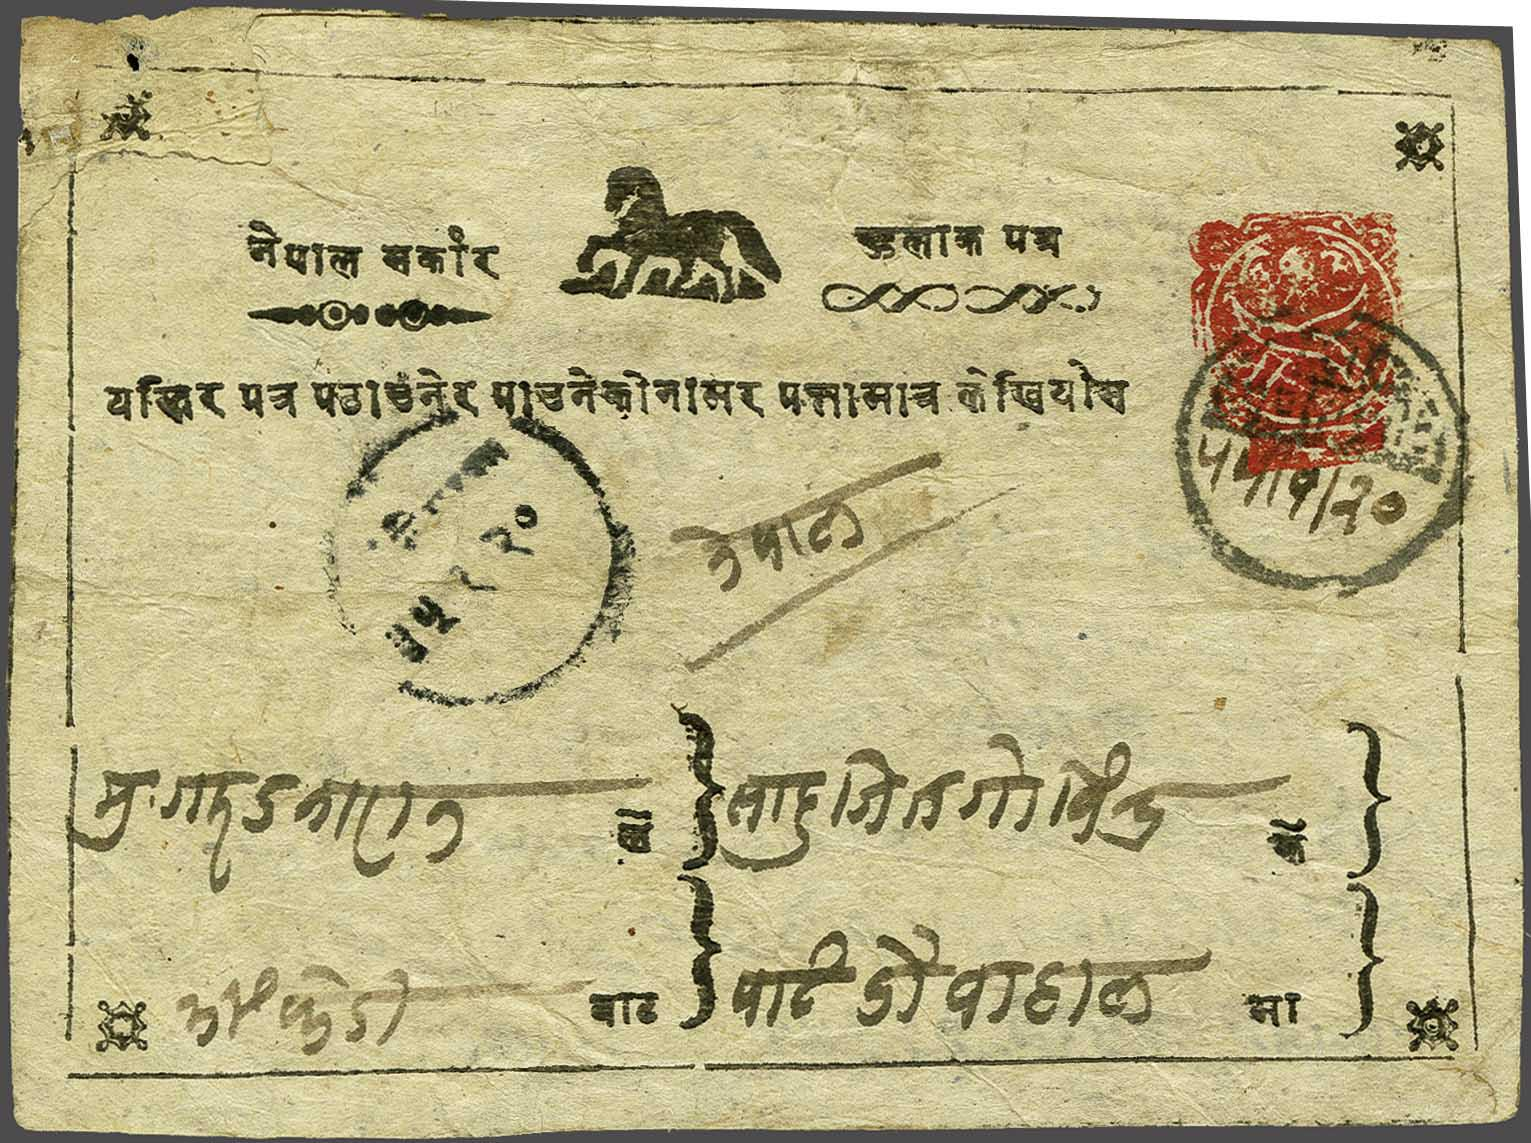 Lot 19 - Great Britain and former colonies Nepal -  Corinphila Veilingen Auction 245-246 Day 1 - Nepal - The Dick van der Wateren Collection, Foreign countries - Single lots, Picture postcards